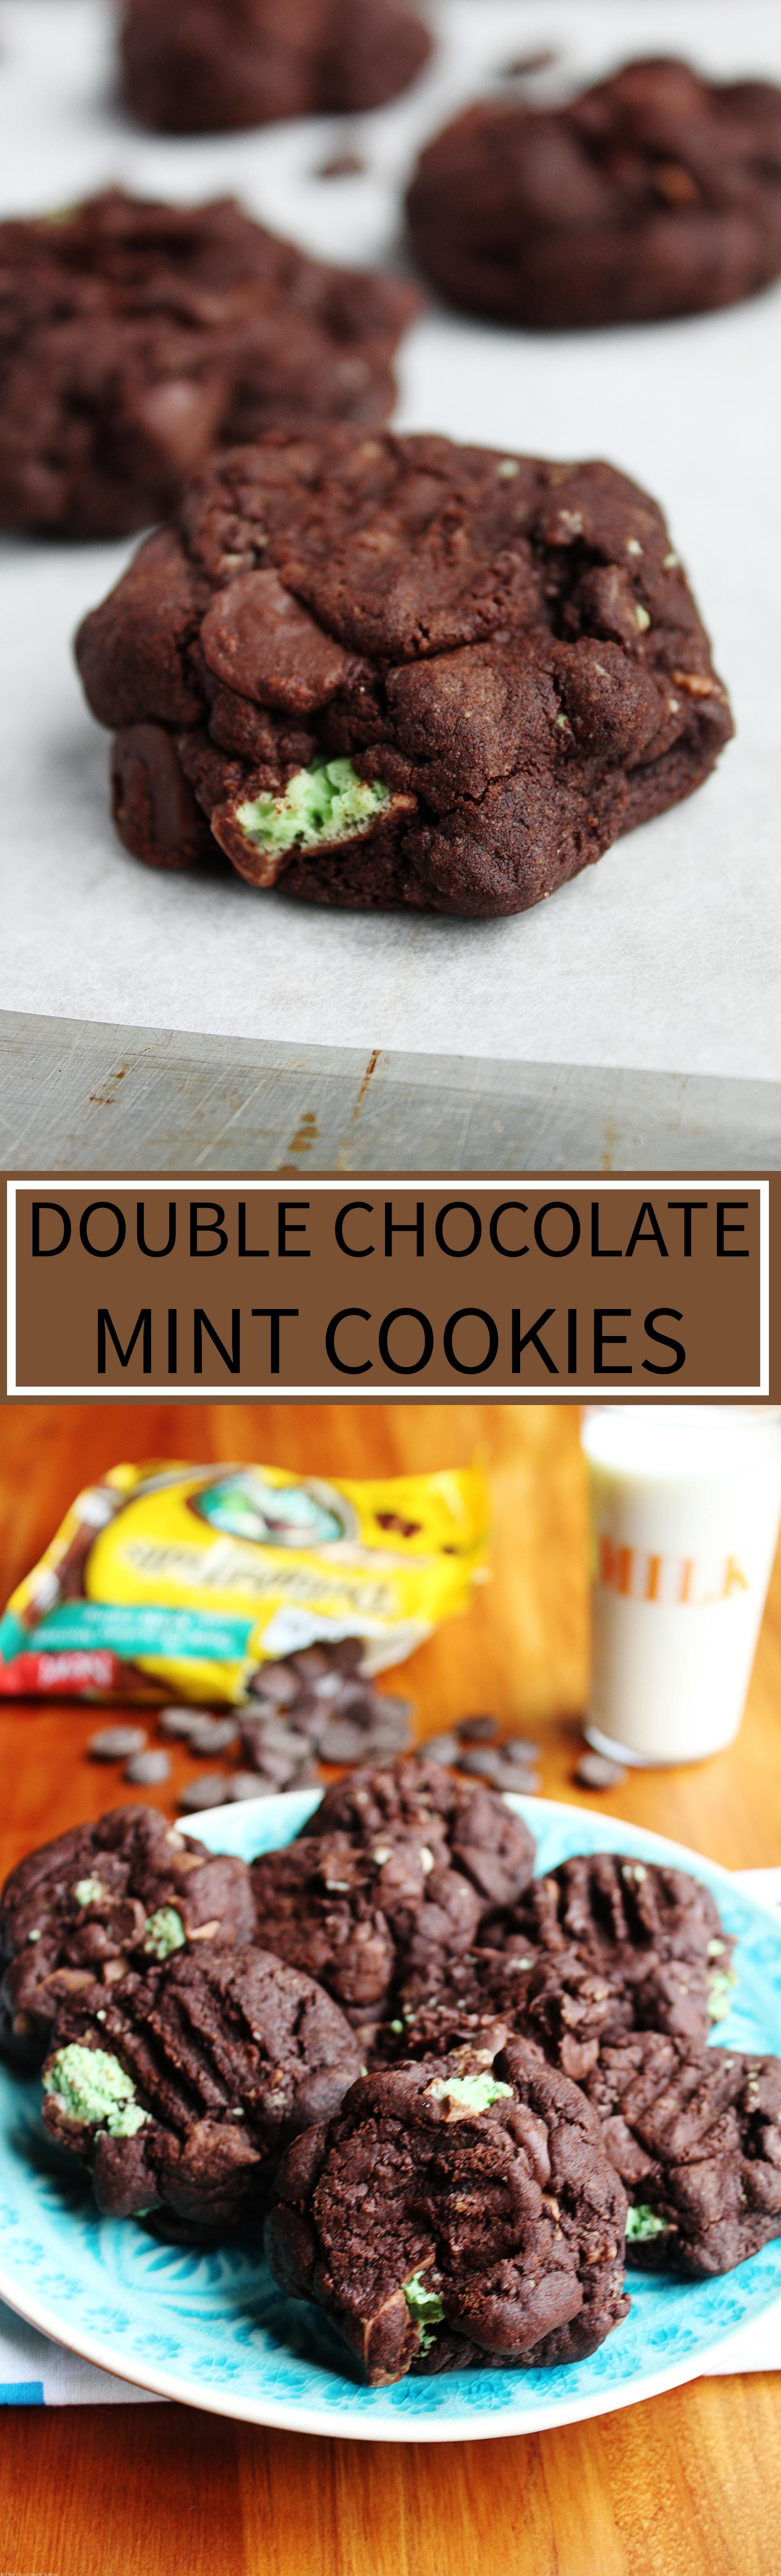 Double Chocolate Mint Cookies - The Chocoholic Baker